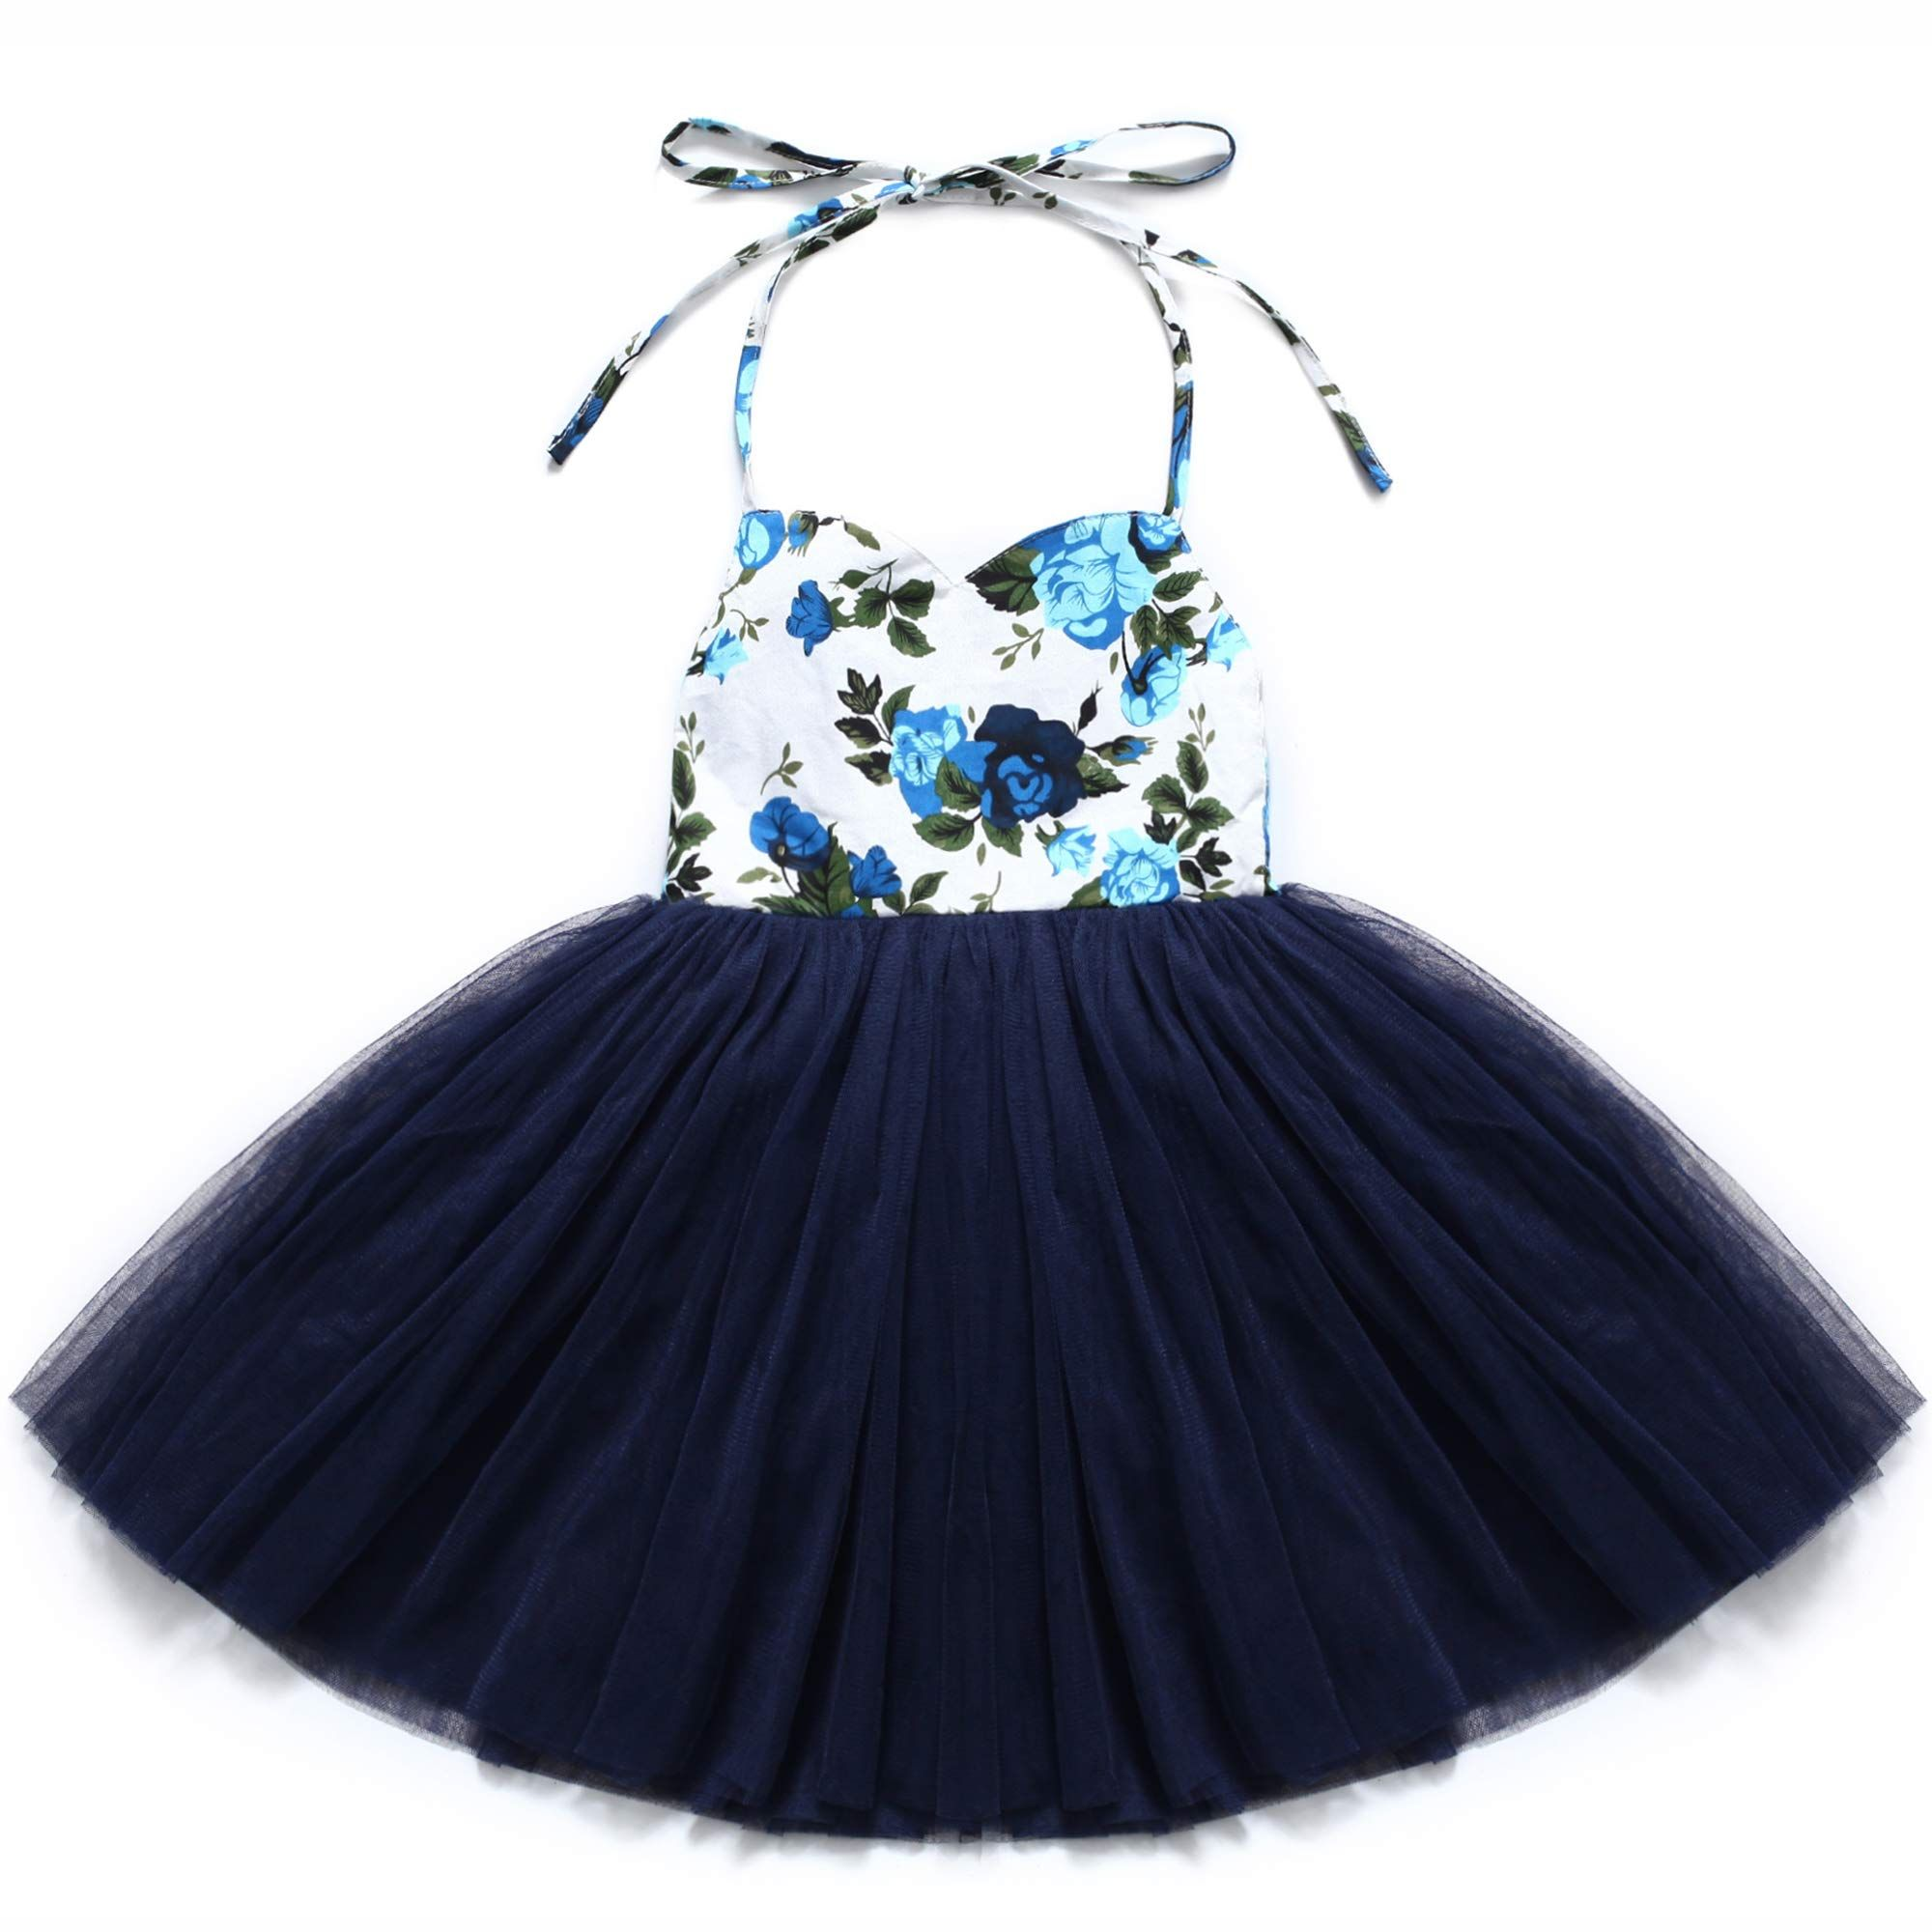 2179e05262 Flofallzique Christening Baby Girls Dress Navy Blue Tutu Birthday Party  Toddler Girls Clothes 1 Navy Blue   Click picture to evaluate even more  details.